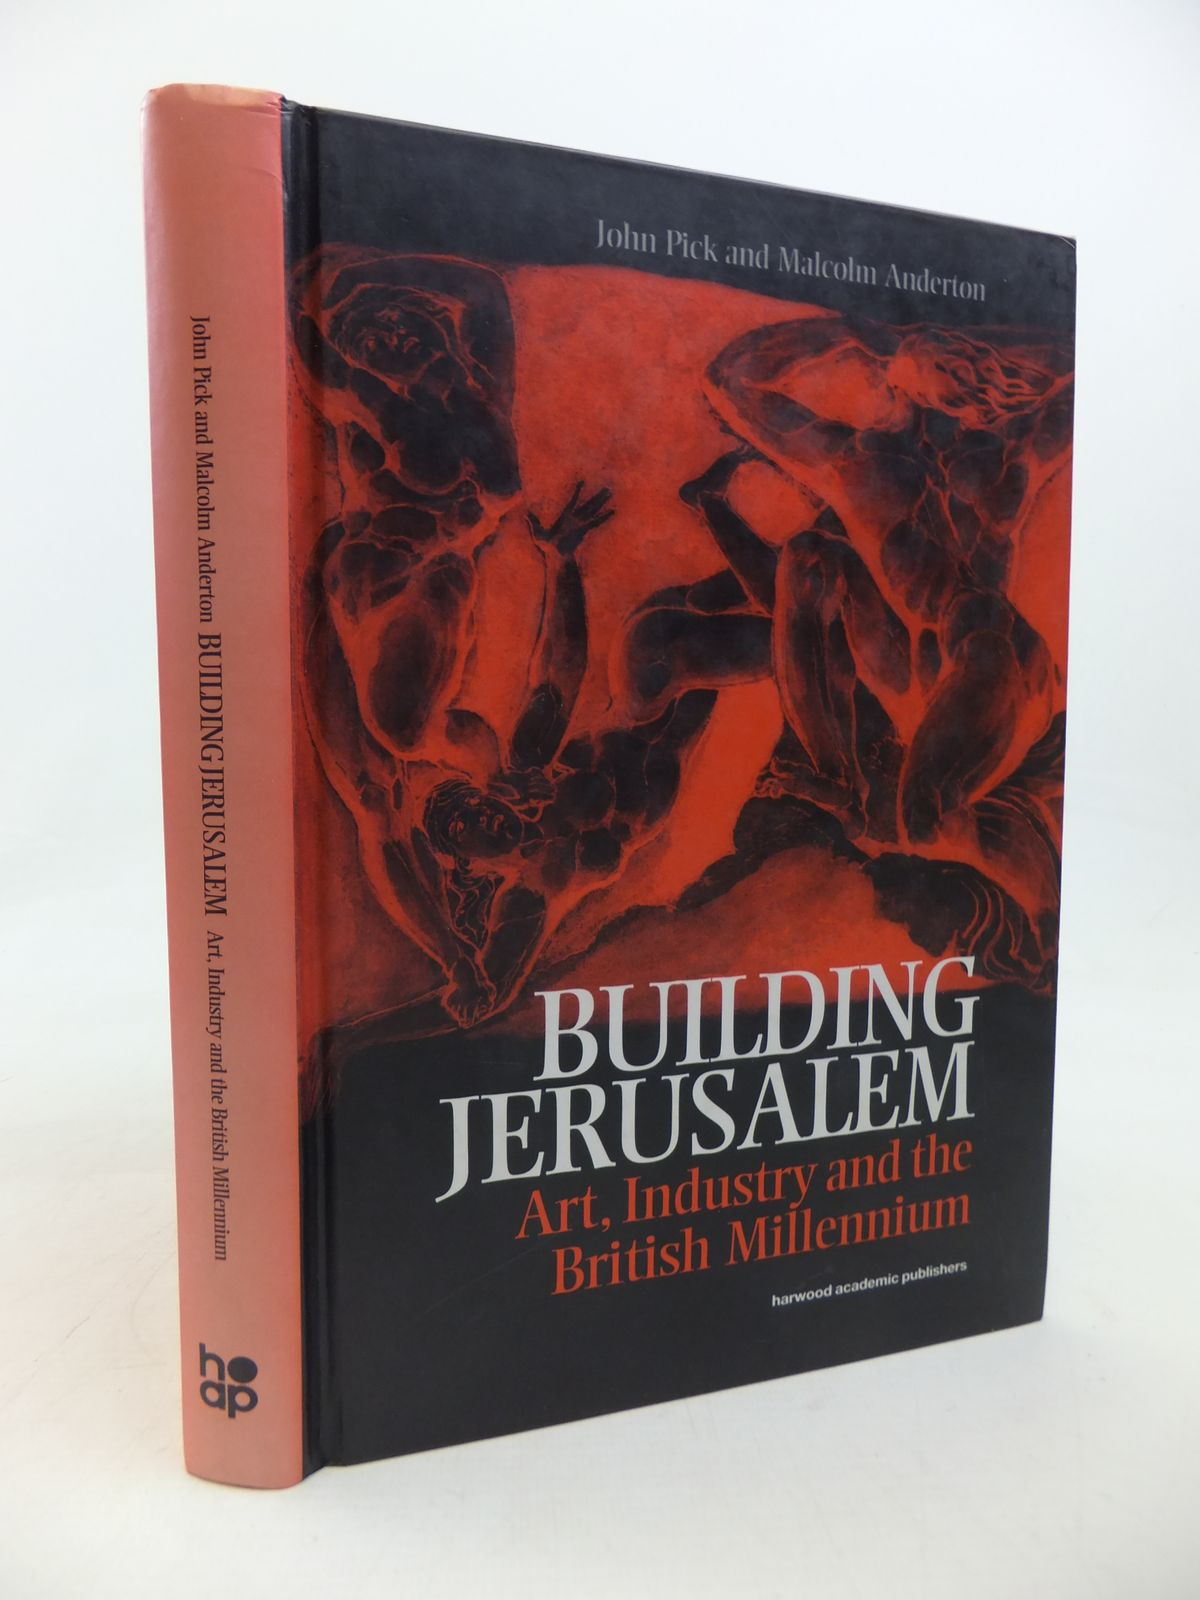 Photo of BUILDING JERUSALEM ART, INDUSTRY AND THE BRITISH MILLENIUM written by Pick, John<br />Anderton, Malcolm published by Harwood Academic Publishers (STOCK CODE: 1810493)  for sale by Stella & Rose's Books